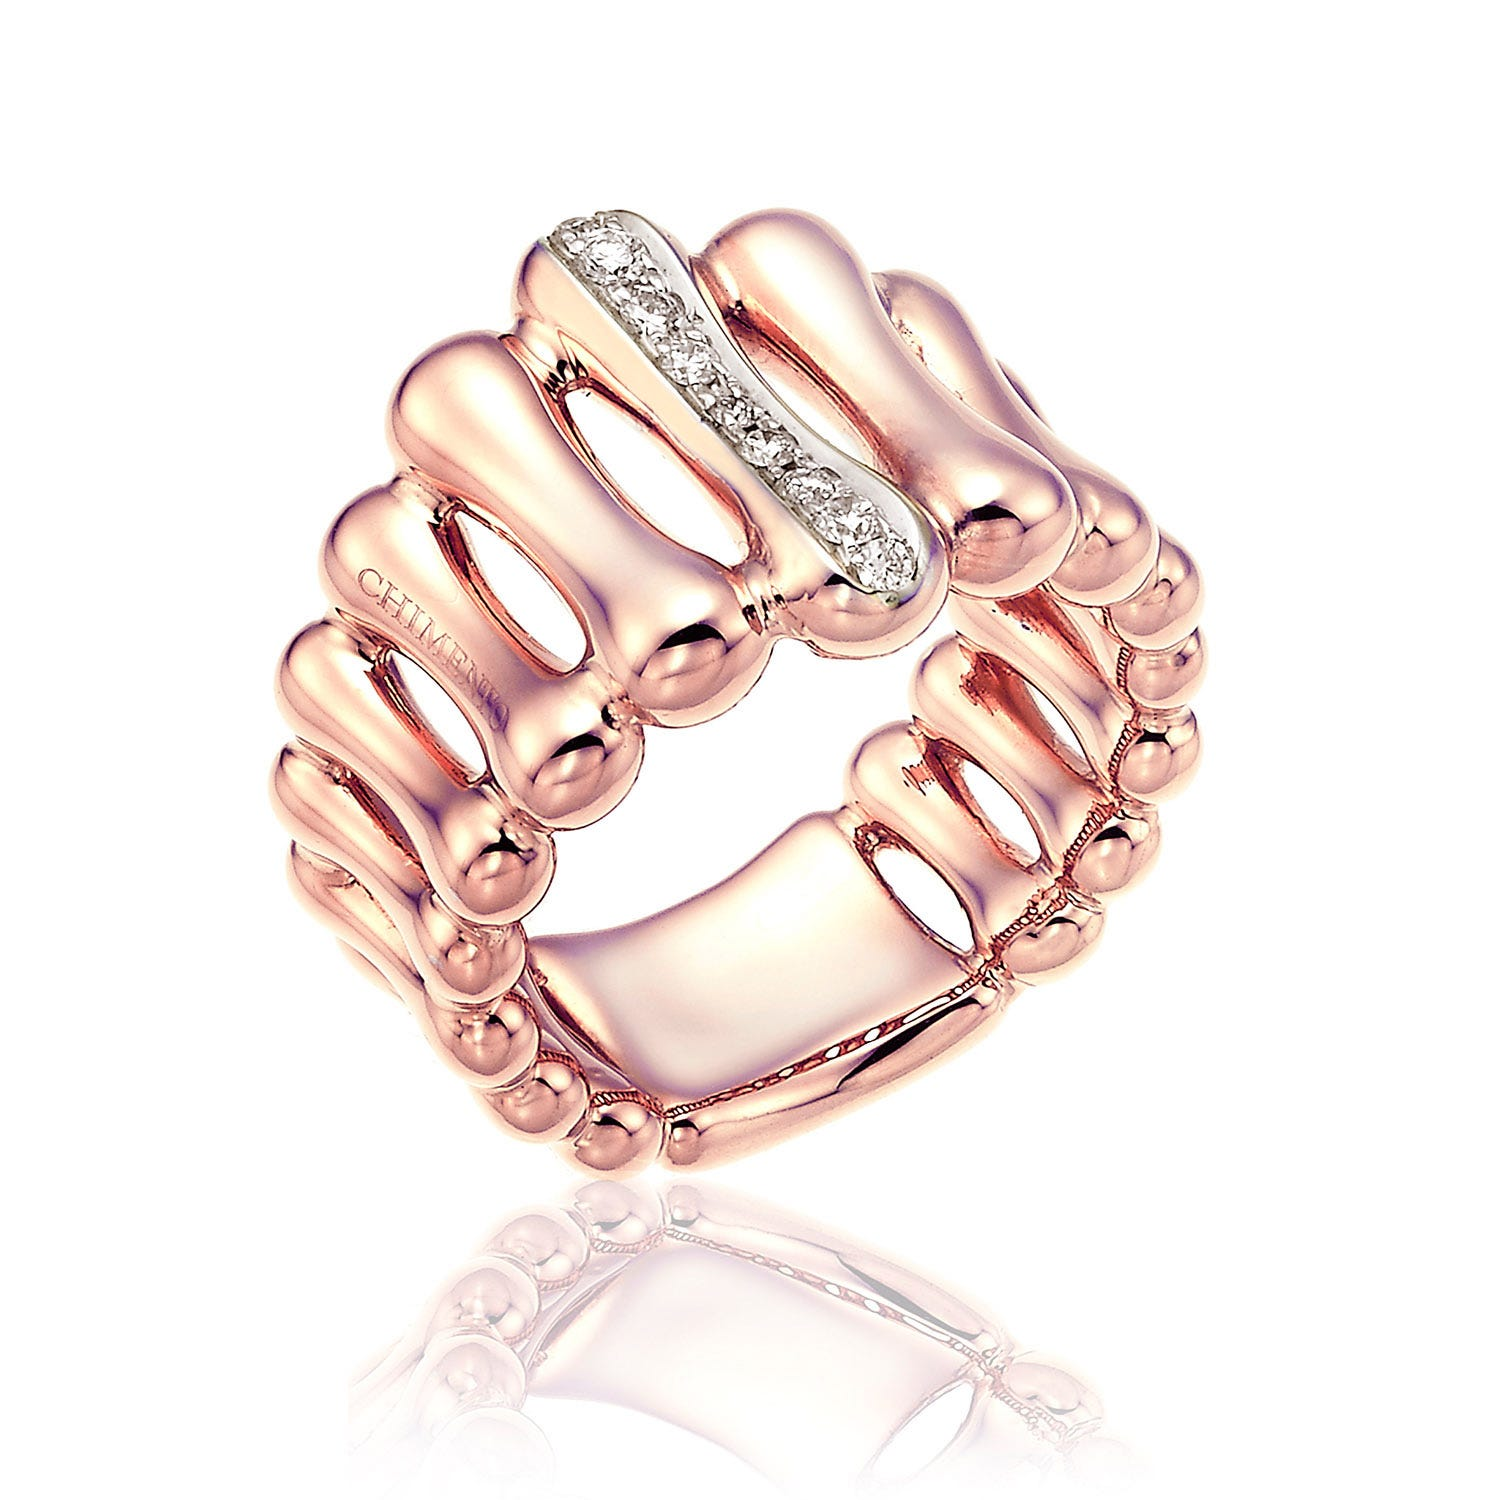 Chimento 18ct Rose Gold and Diamond Bamboo Collection Ring